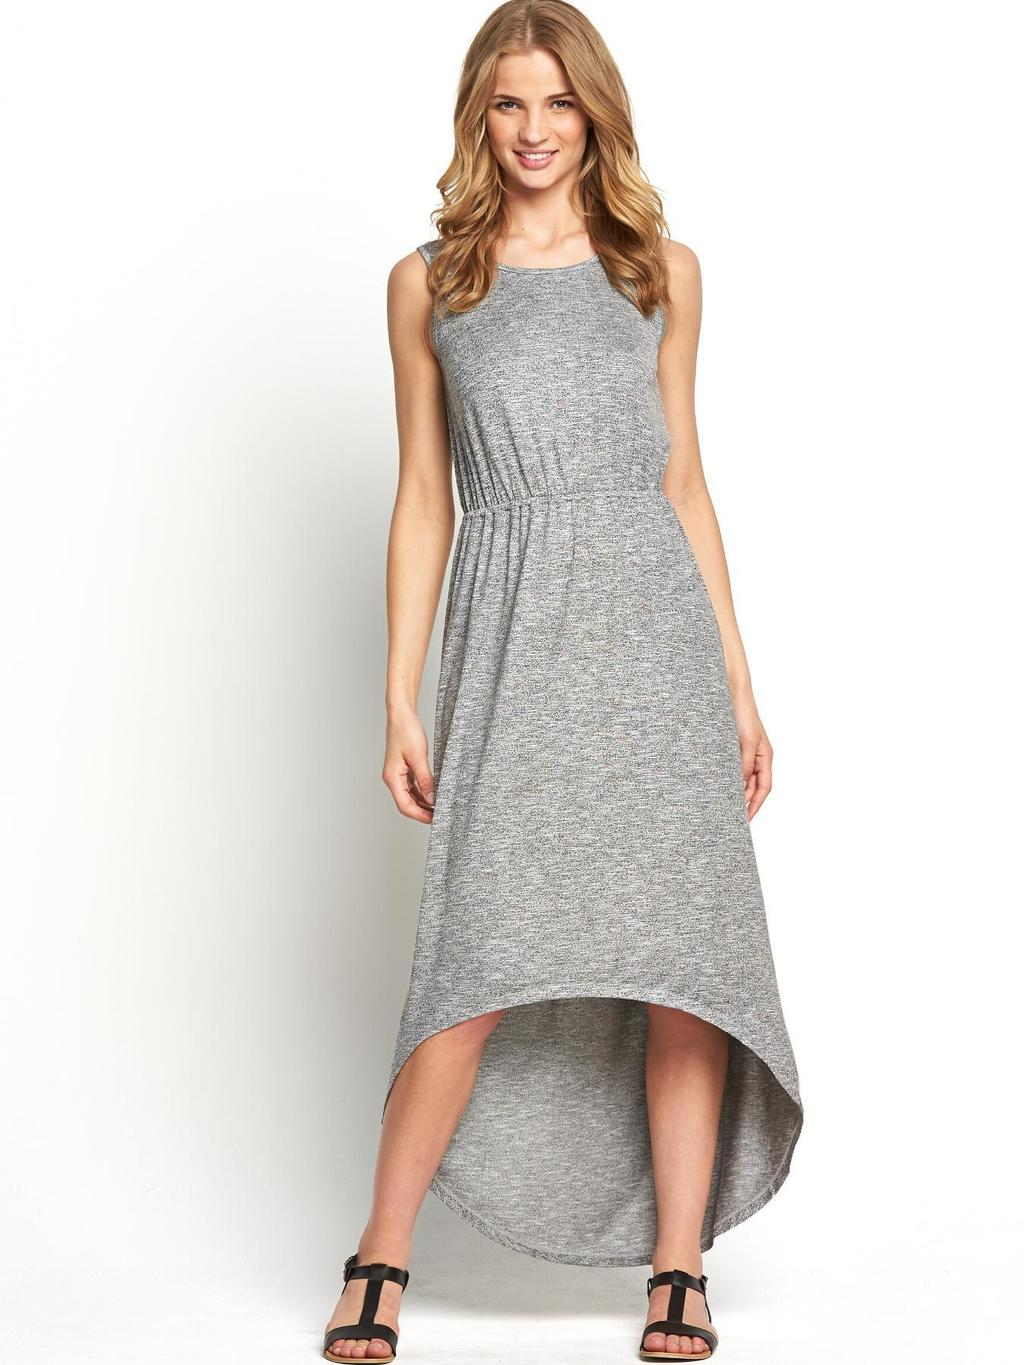 High Low Hem Maxi Dress, Black - length: below the knee; neckline: round neck; sleeve style: sleeveless; secondary colour: mid grey; predominant colour: light grey; occasions: casual; fit: body skimming; style: asymmetric (hem); fibres: viscose/rayon - stretch; back detail: longer hem at back than at front; sleeve length: sleeveless; pattern type: fabric; texture group: jersey - stretchy/drapey; season: s/s 2014; pattern: marl; wardrobe: basic